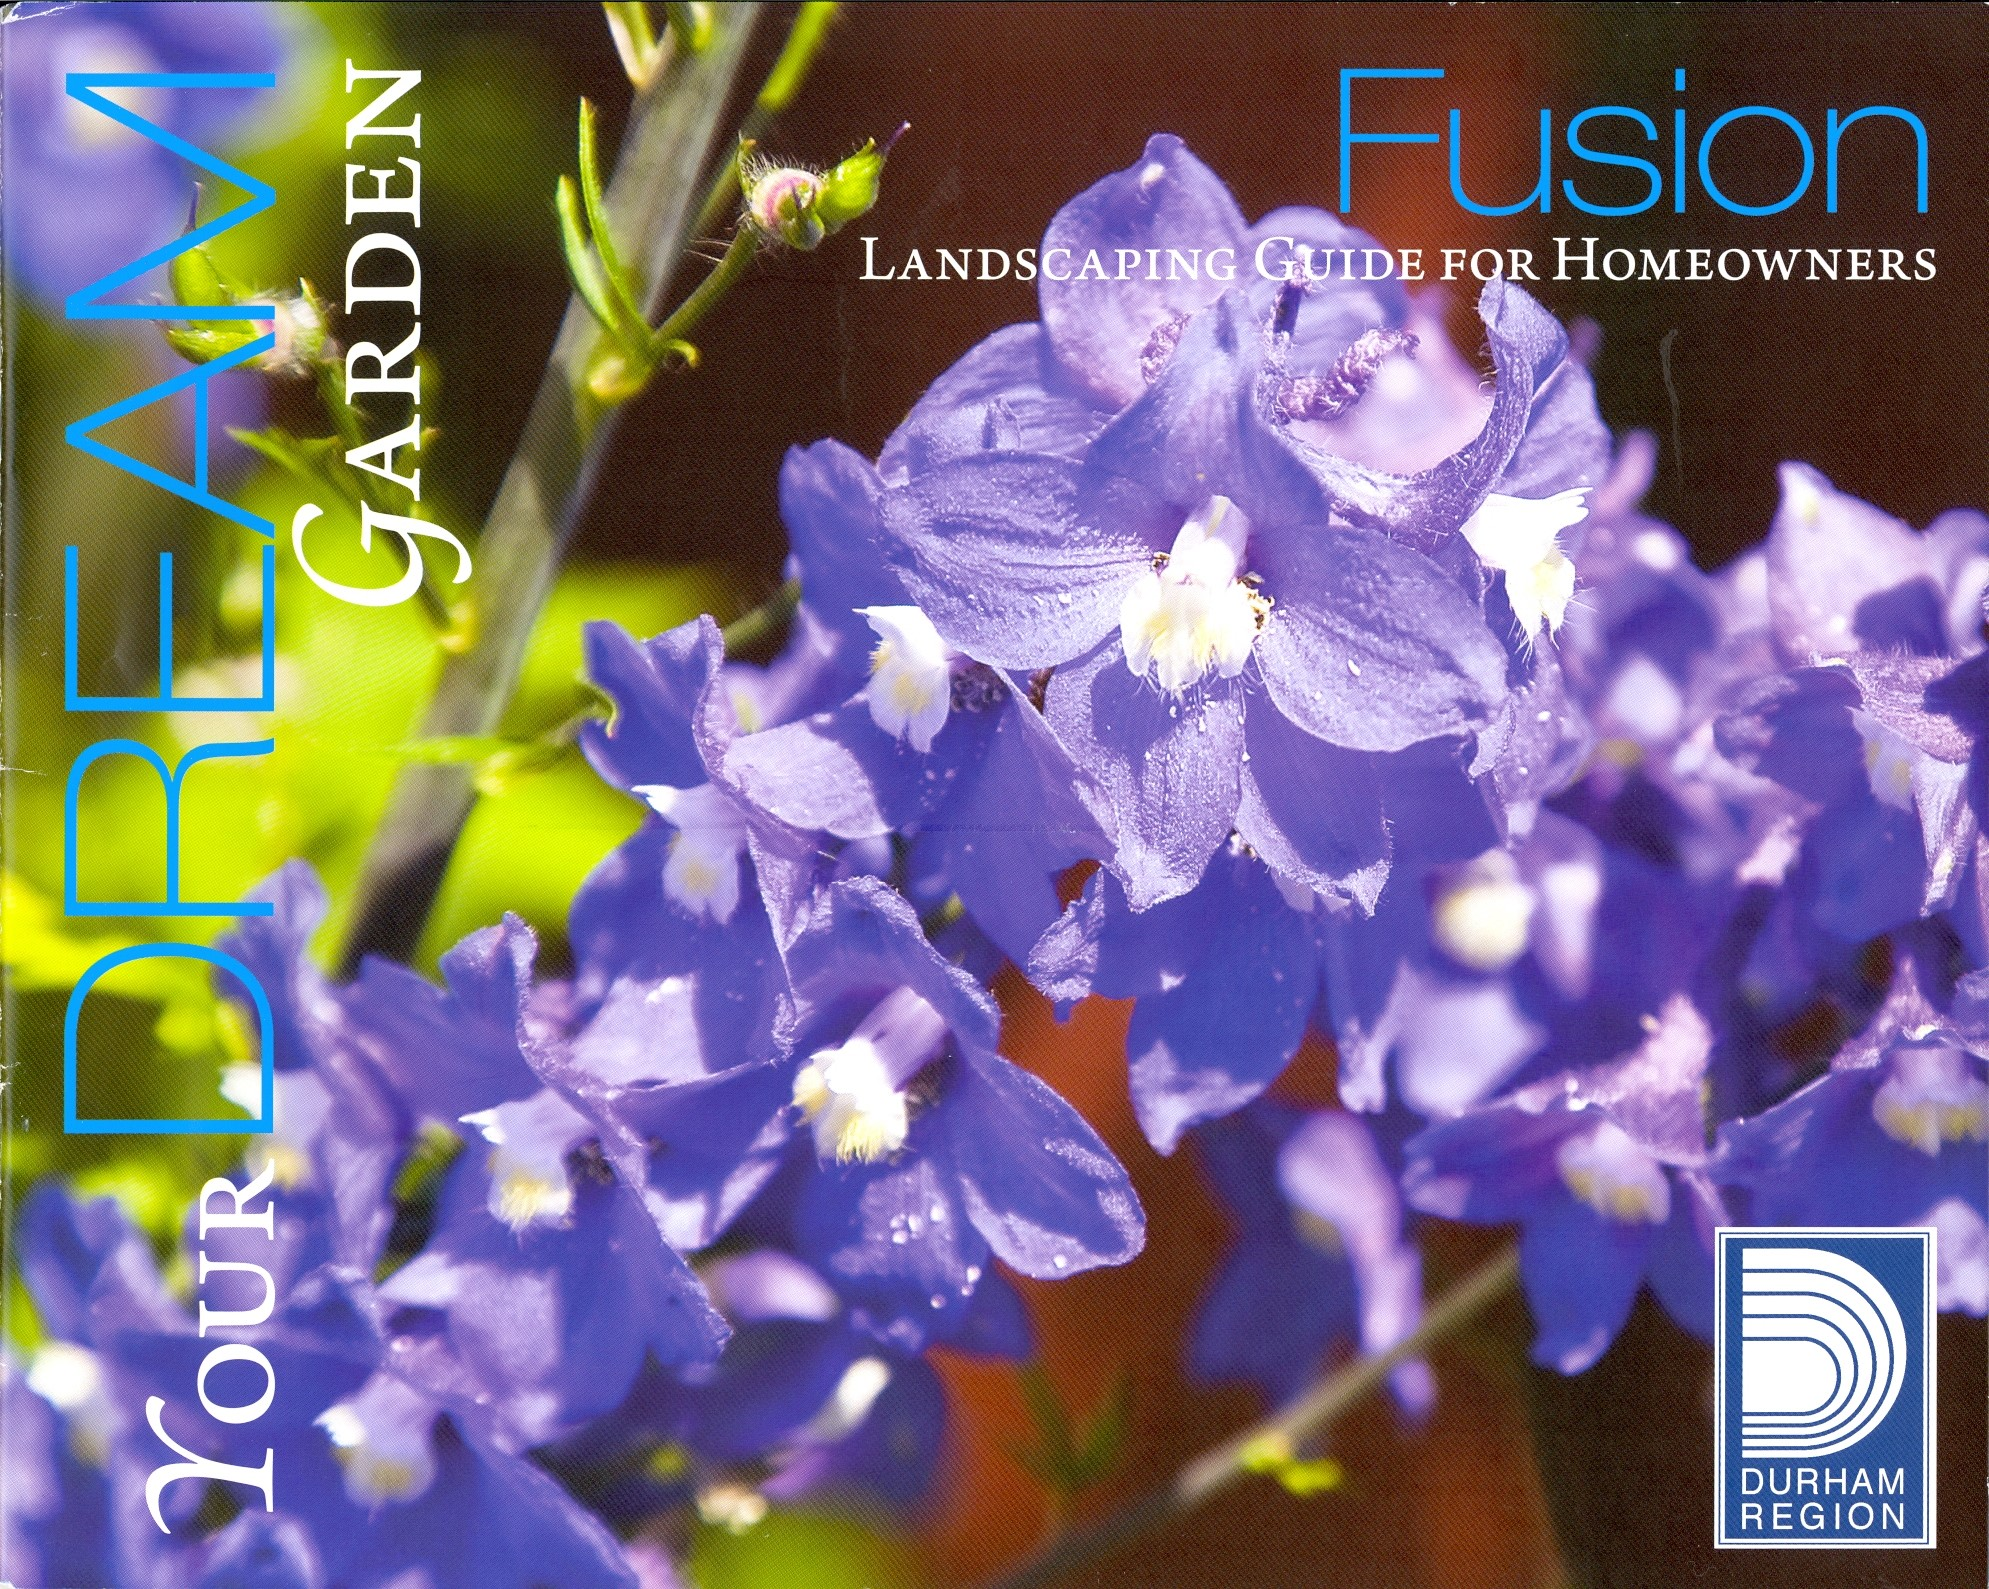 Cover page of Fusion Landscaping Guide